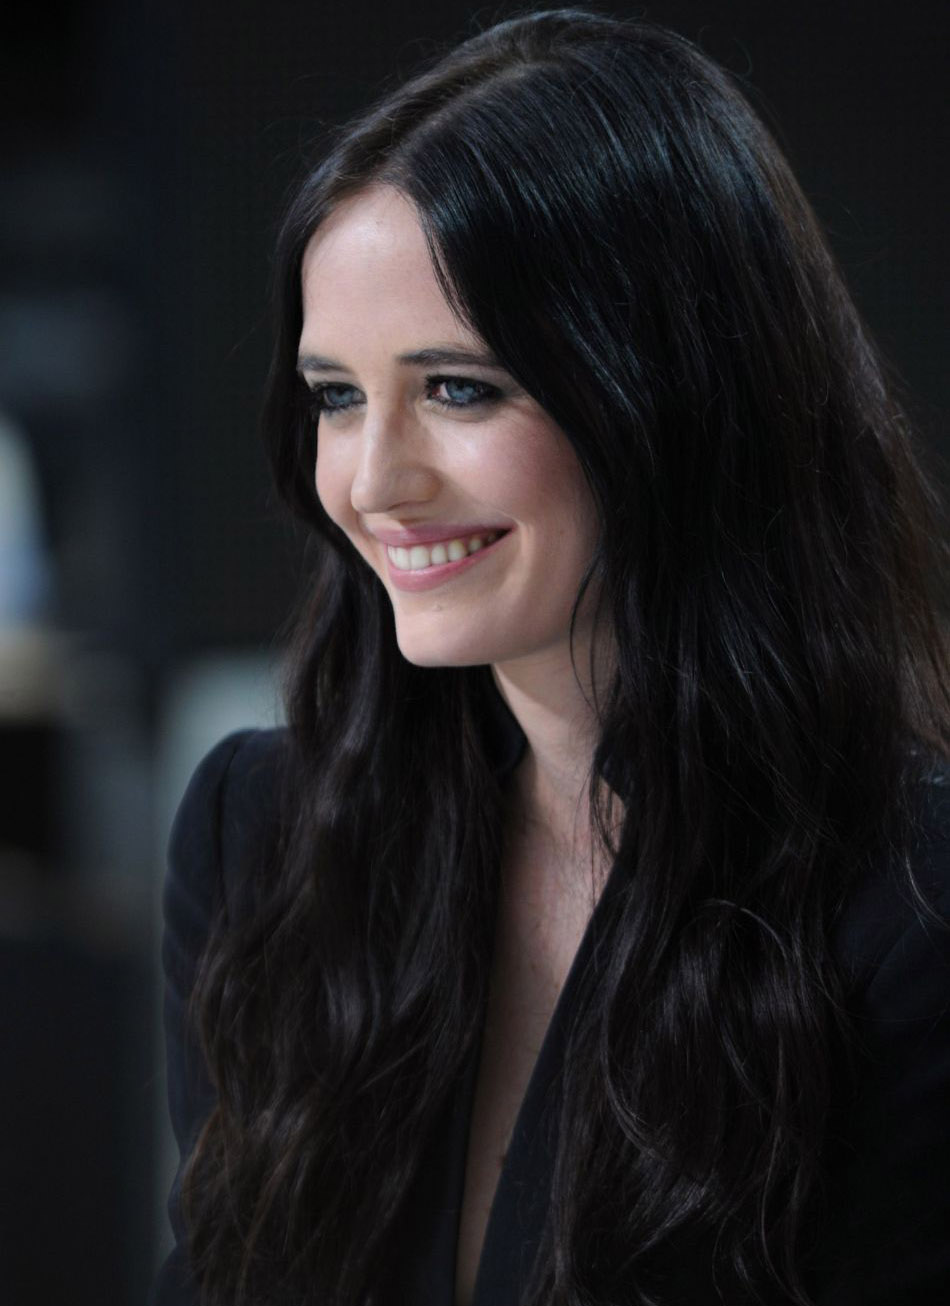 Fantastic Eva Green Beautiful Smile Face And Cute Look Pose Mobile Free Background Download Images Hd